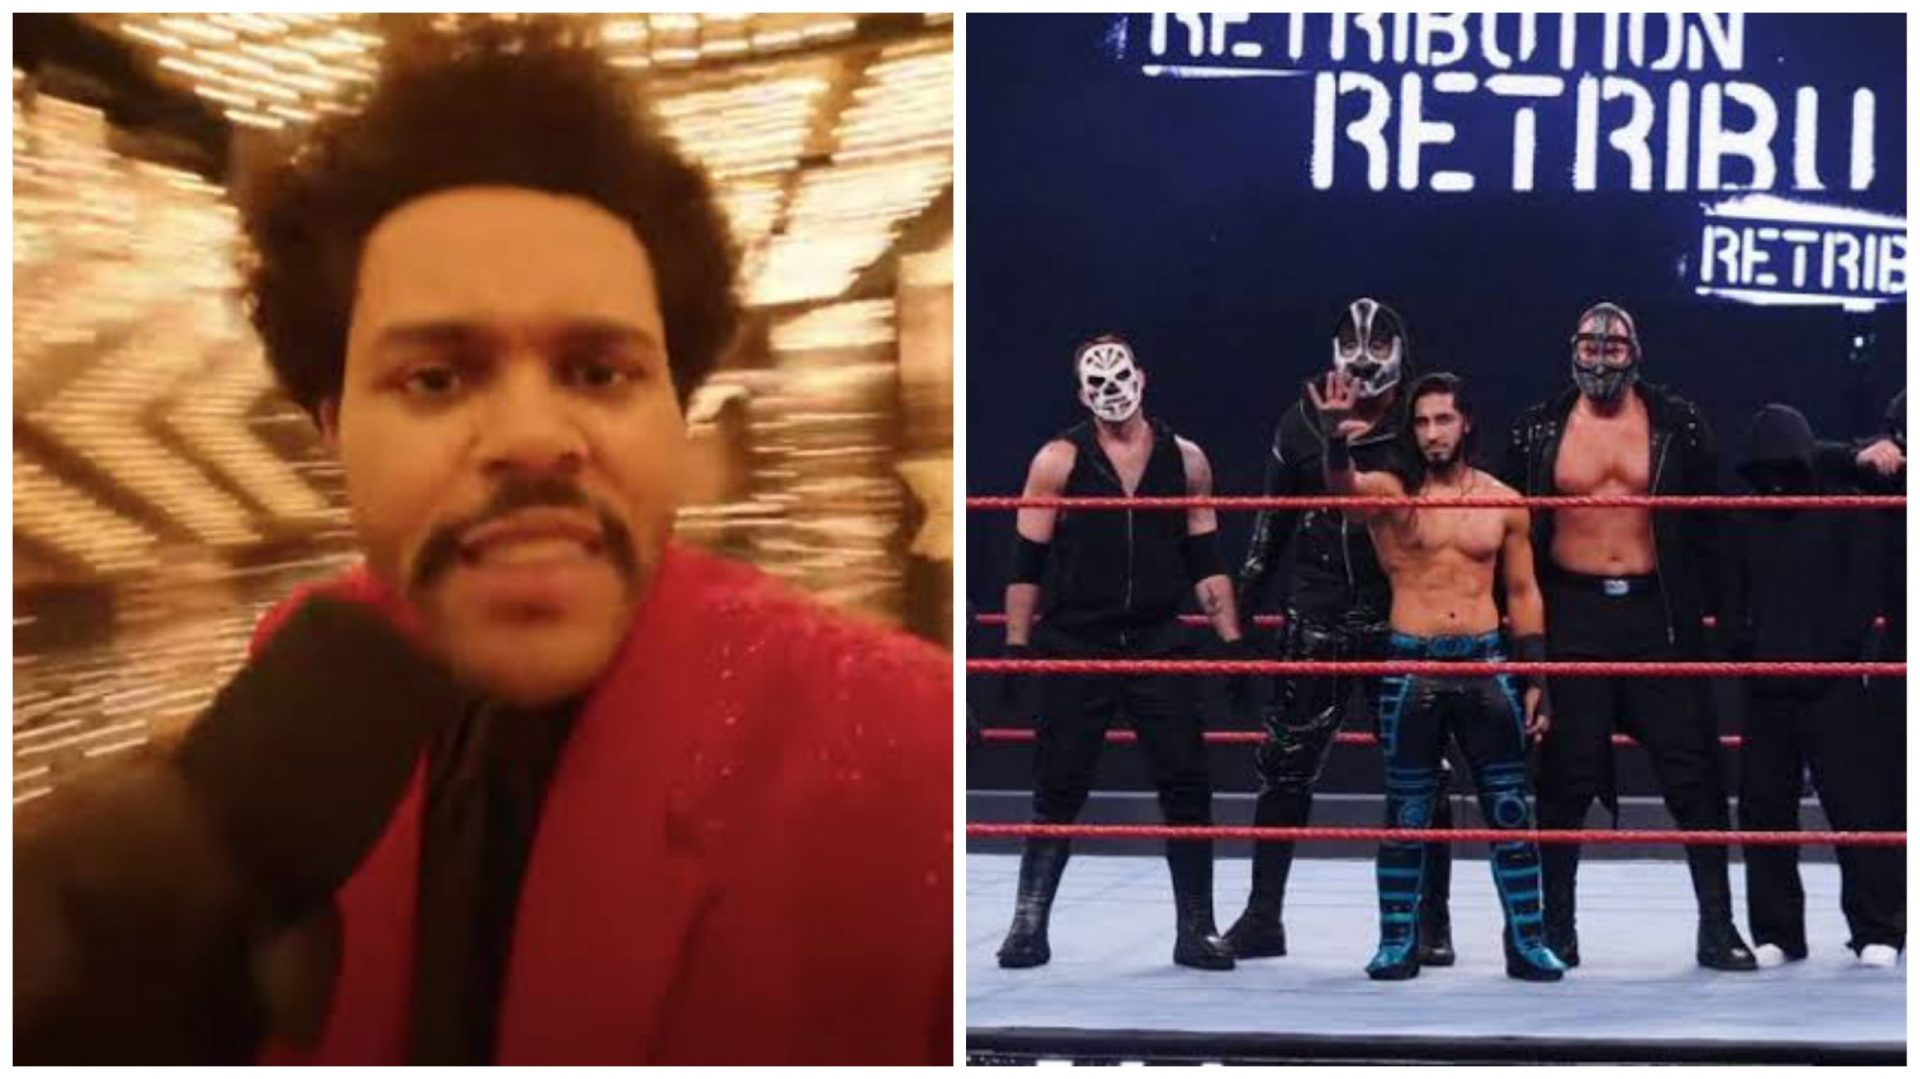 Retribution member Mace accuses The Weeknd of copying their gimmick during Super Bowl halftime show - THE SPORTS ROOM